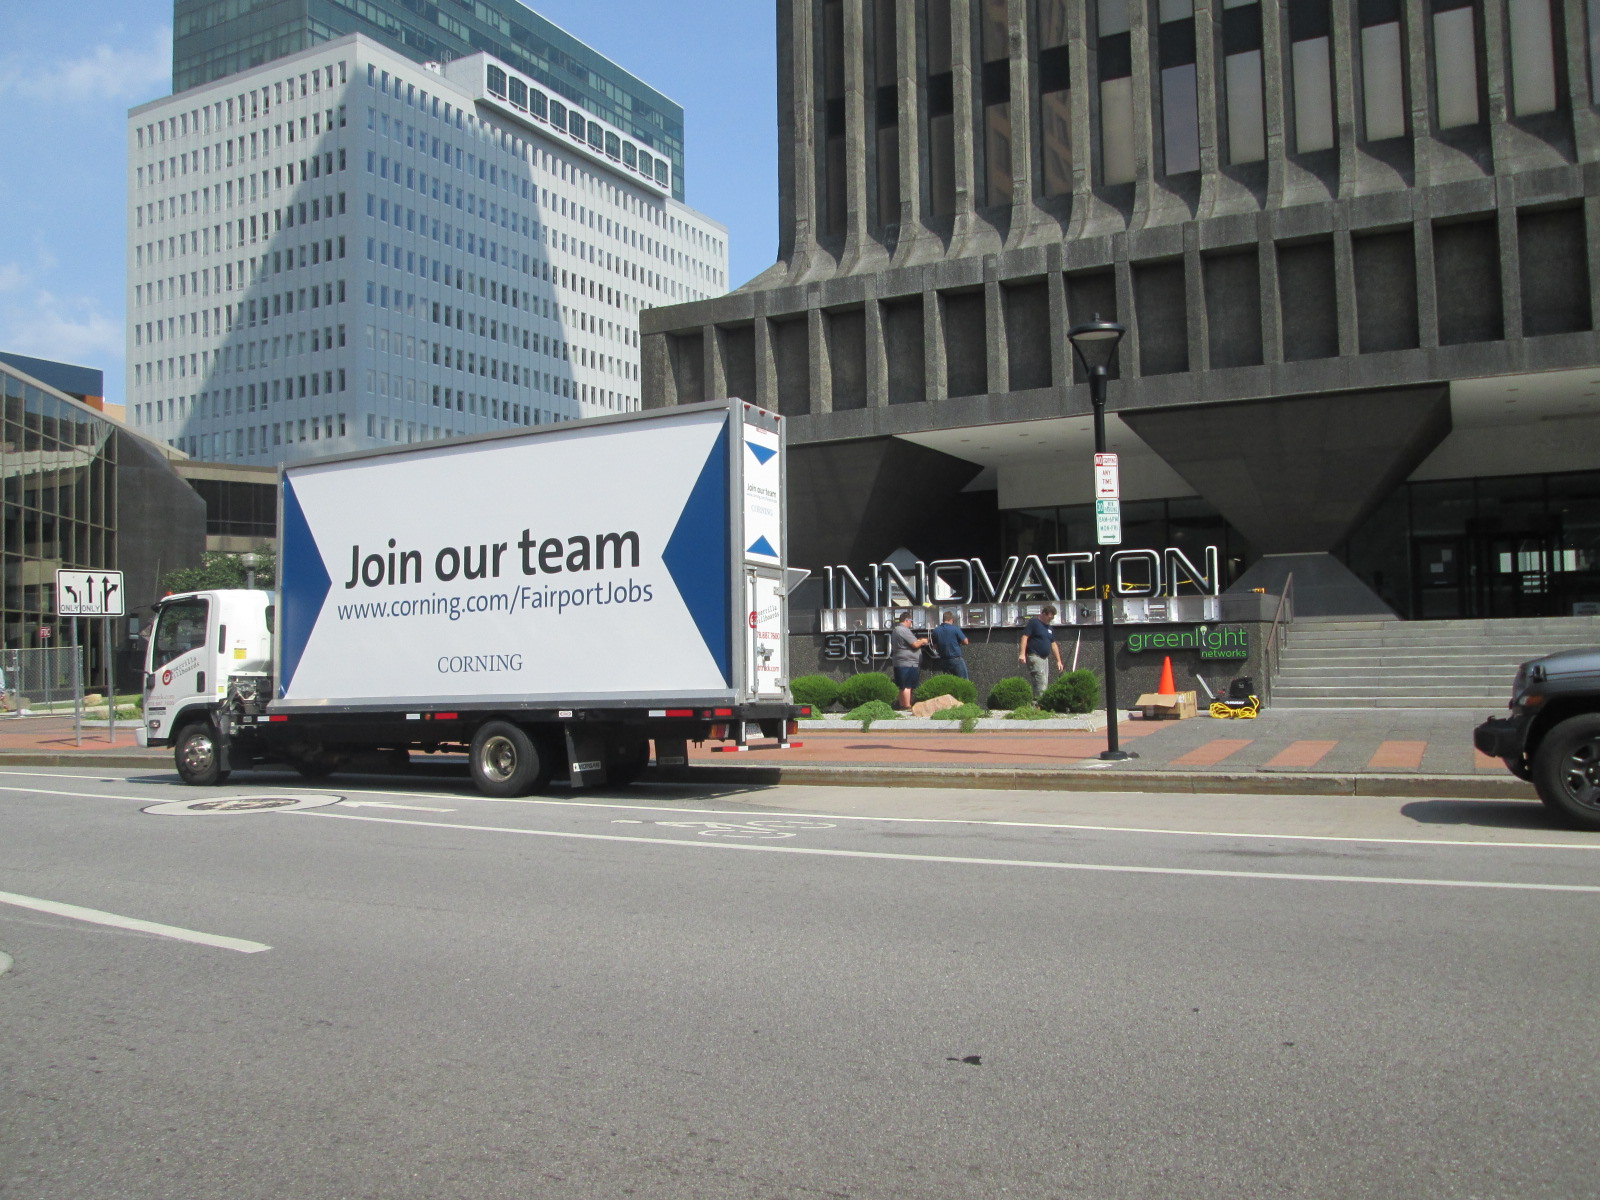 Join Our Team Mobile Billboard at Innovation Square